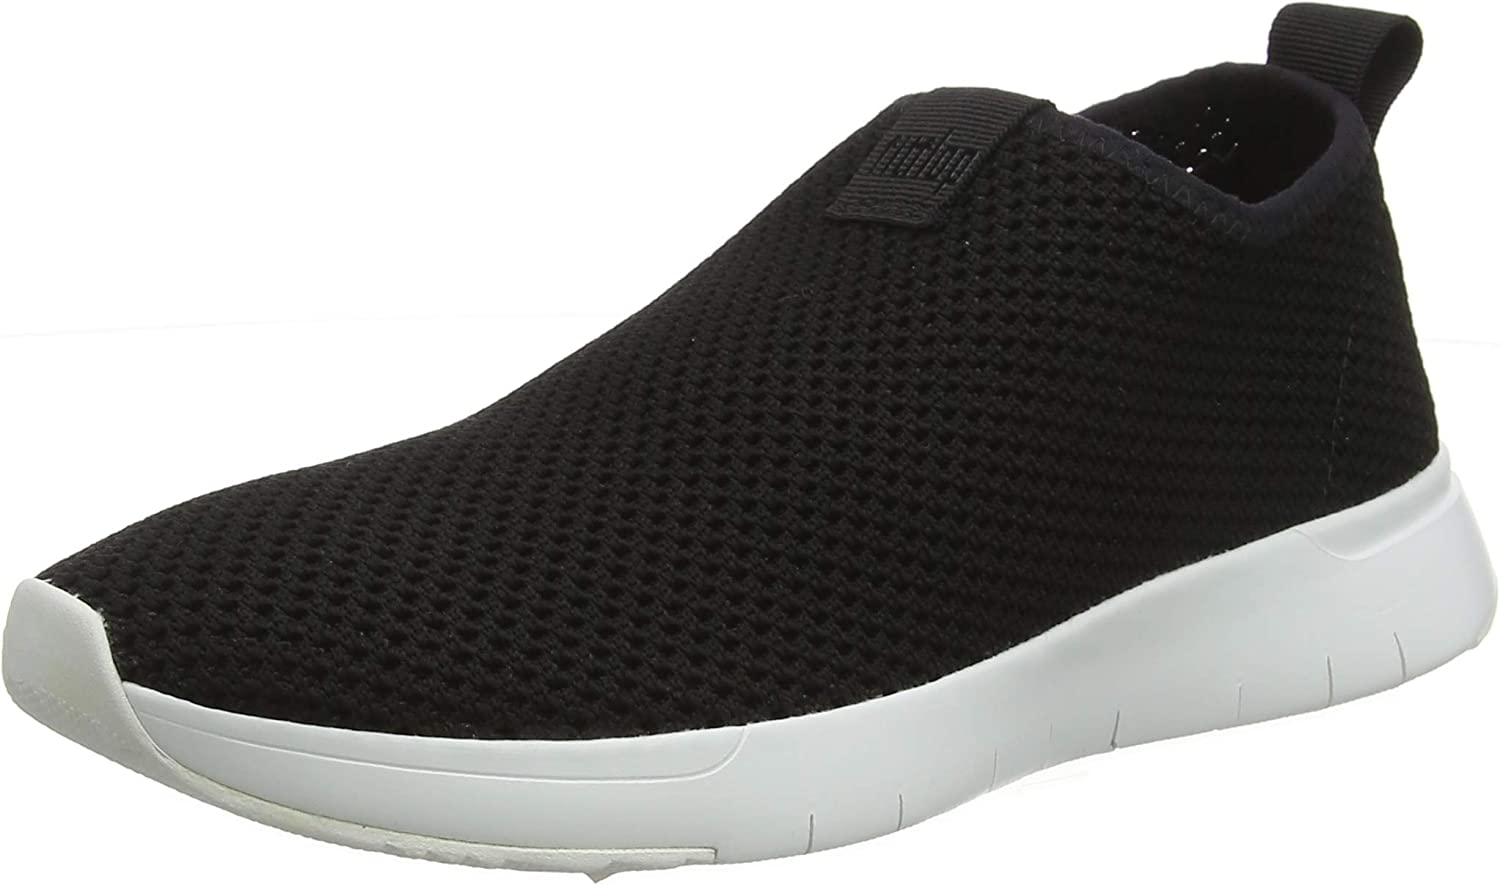 FitFlop Women's Slip On Trainers